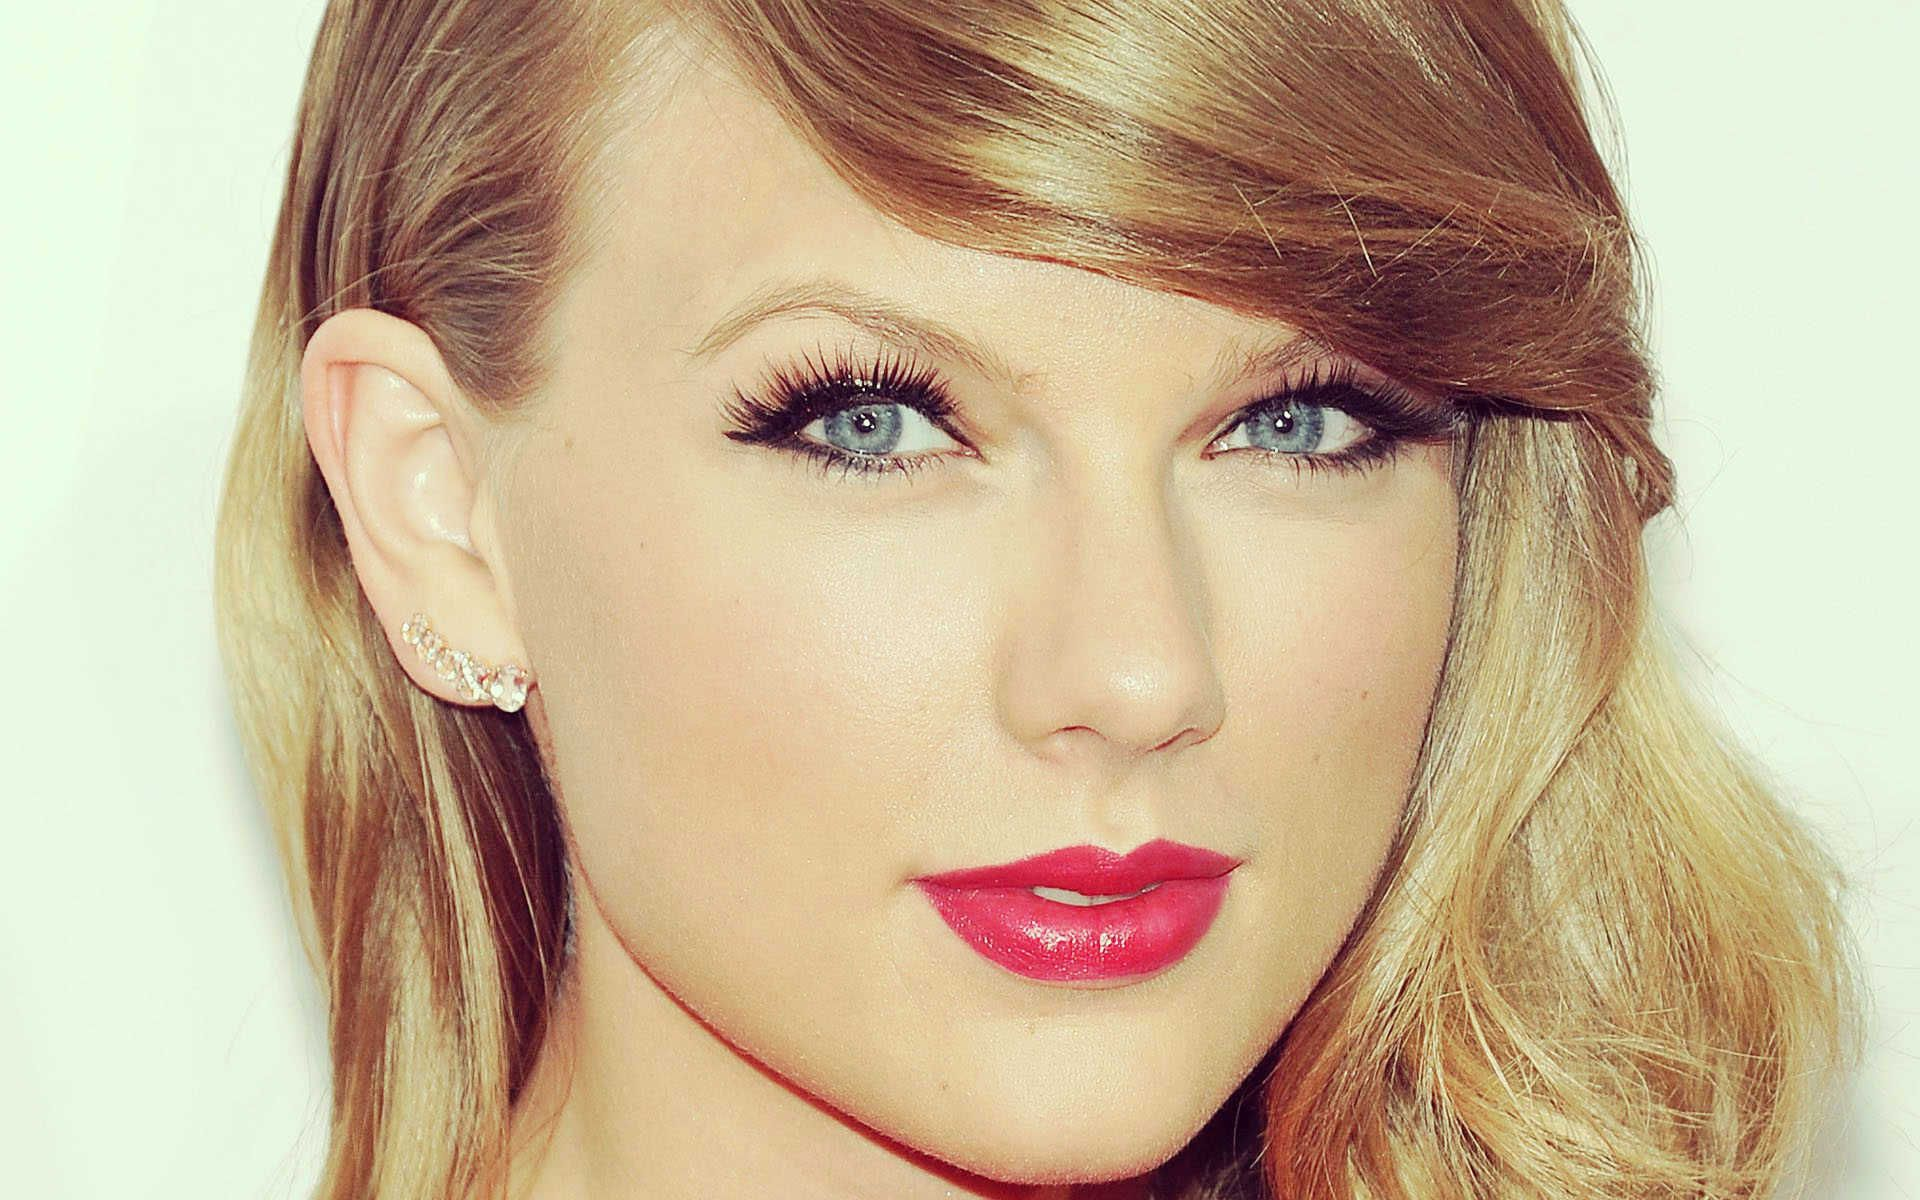 Taylor Swift Blank Space Wallpaper Free Desktop Backgrounds And